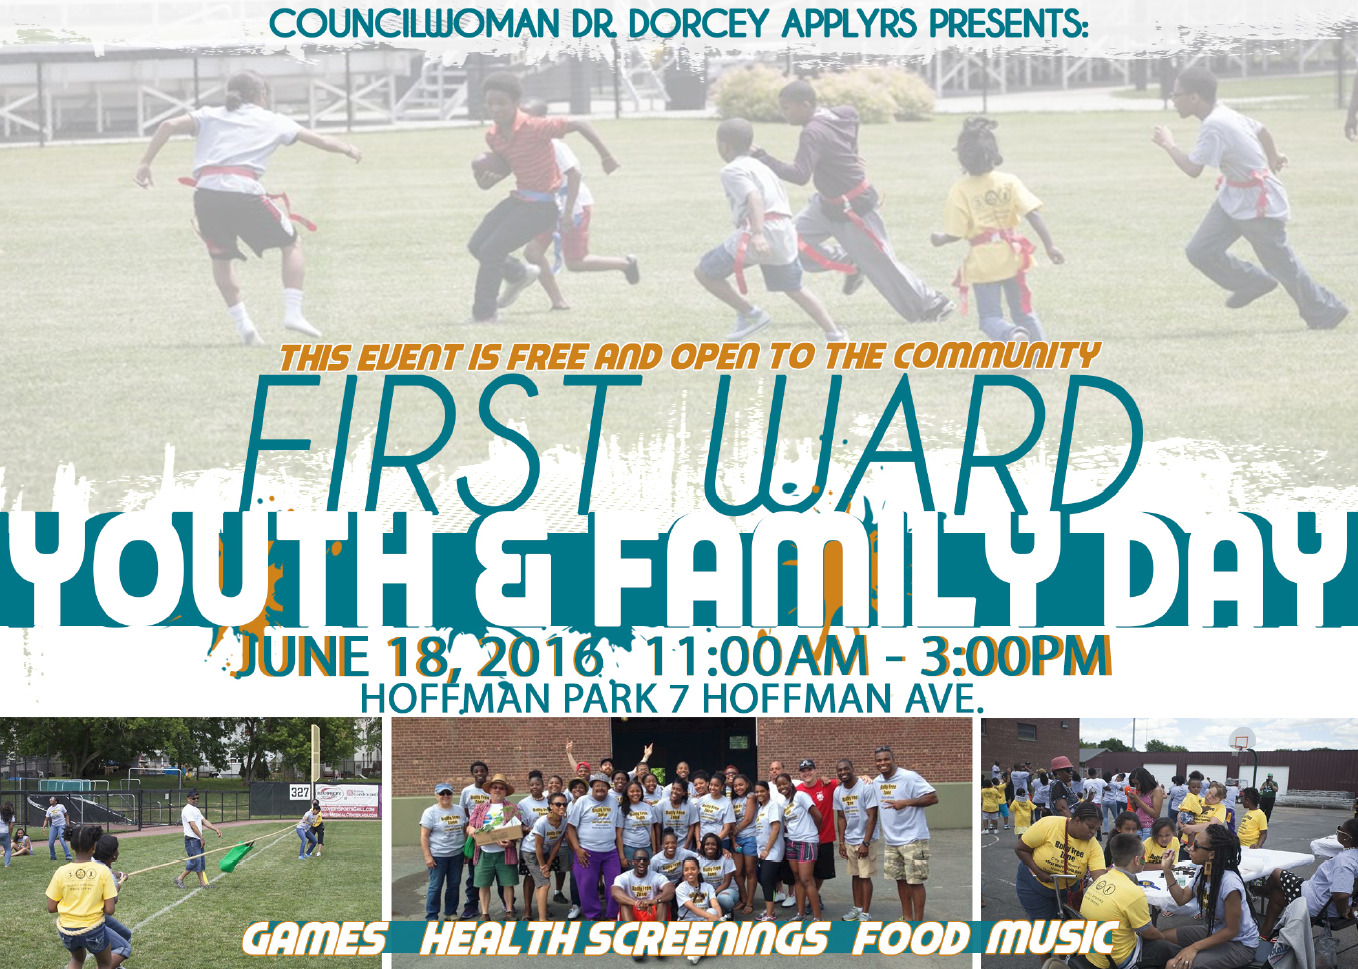 1st ward youth and family day